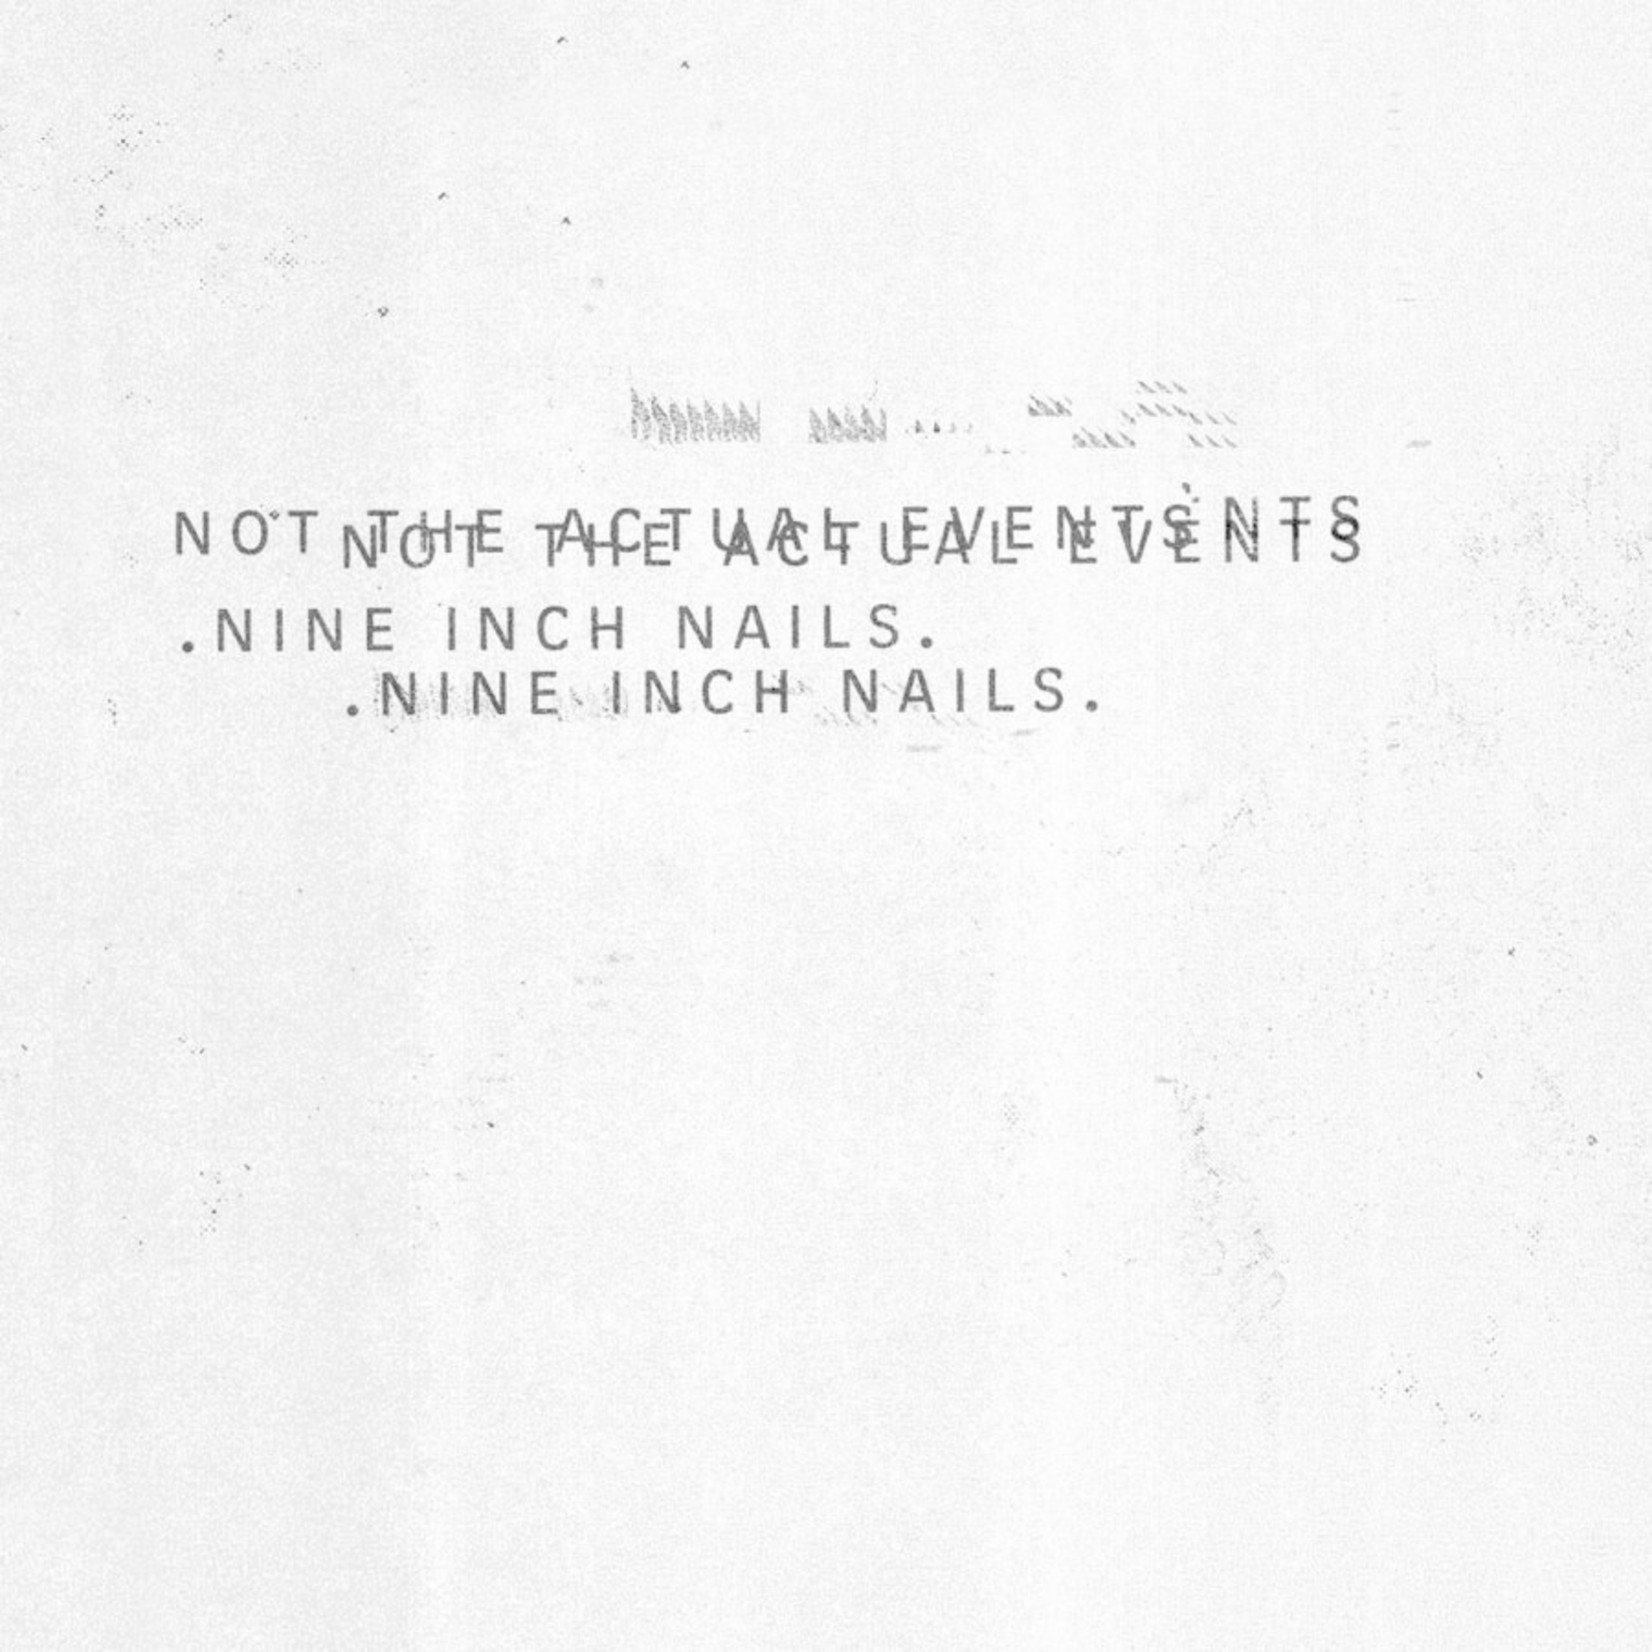 [New] Nine Inch Nails: Not The Actual Events EP